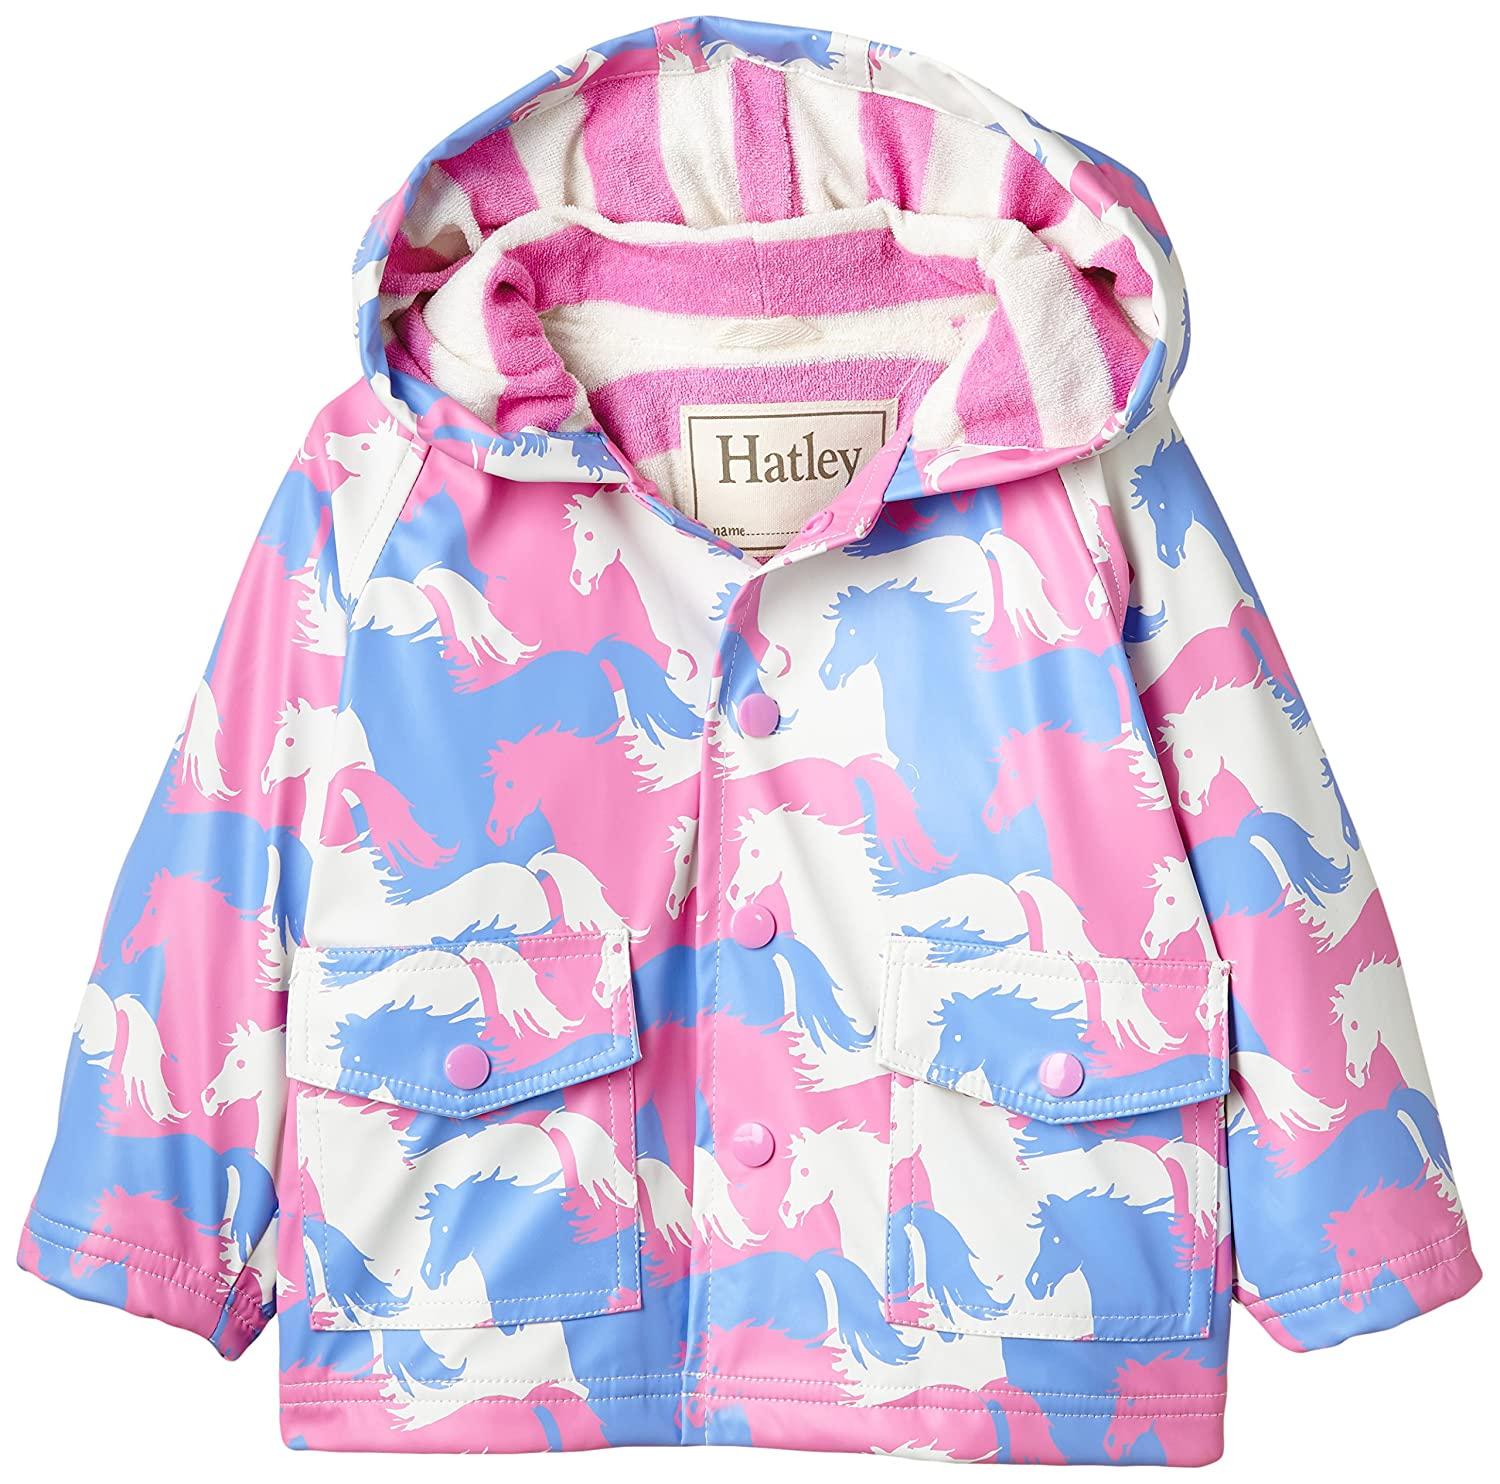 Hatley Baby Girls 0-24m Puzzle Piece Horses Raincoat Pink 12-18 Months RC3FAHO175